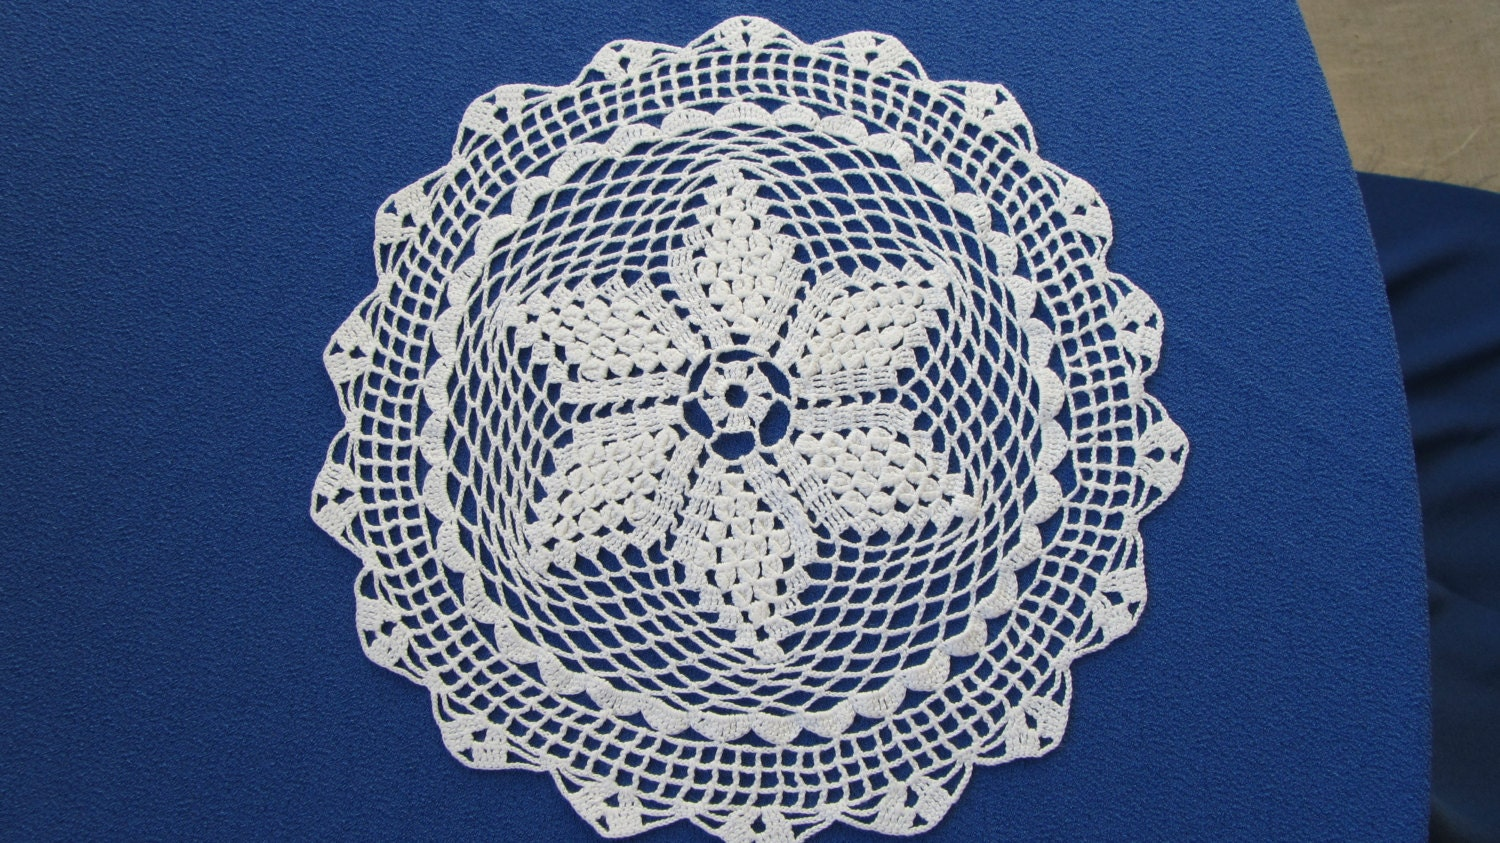 Crochet cotton lace, Crochet lace napkin, Cotton USSR napkin, Cotton lace doilie